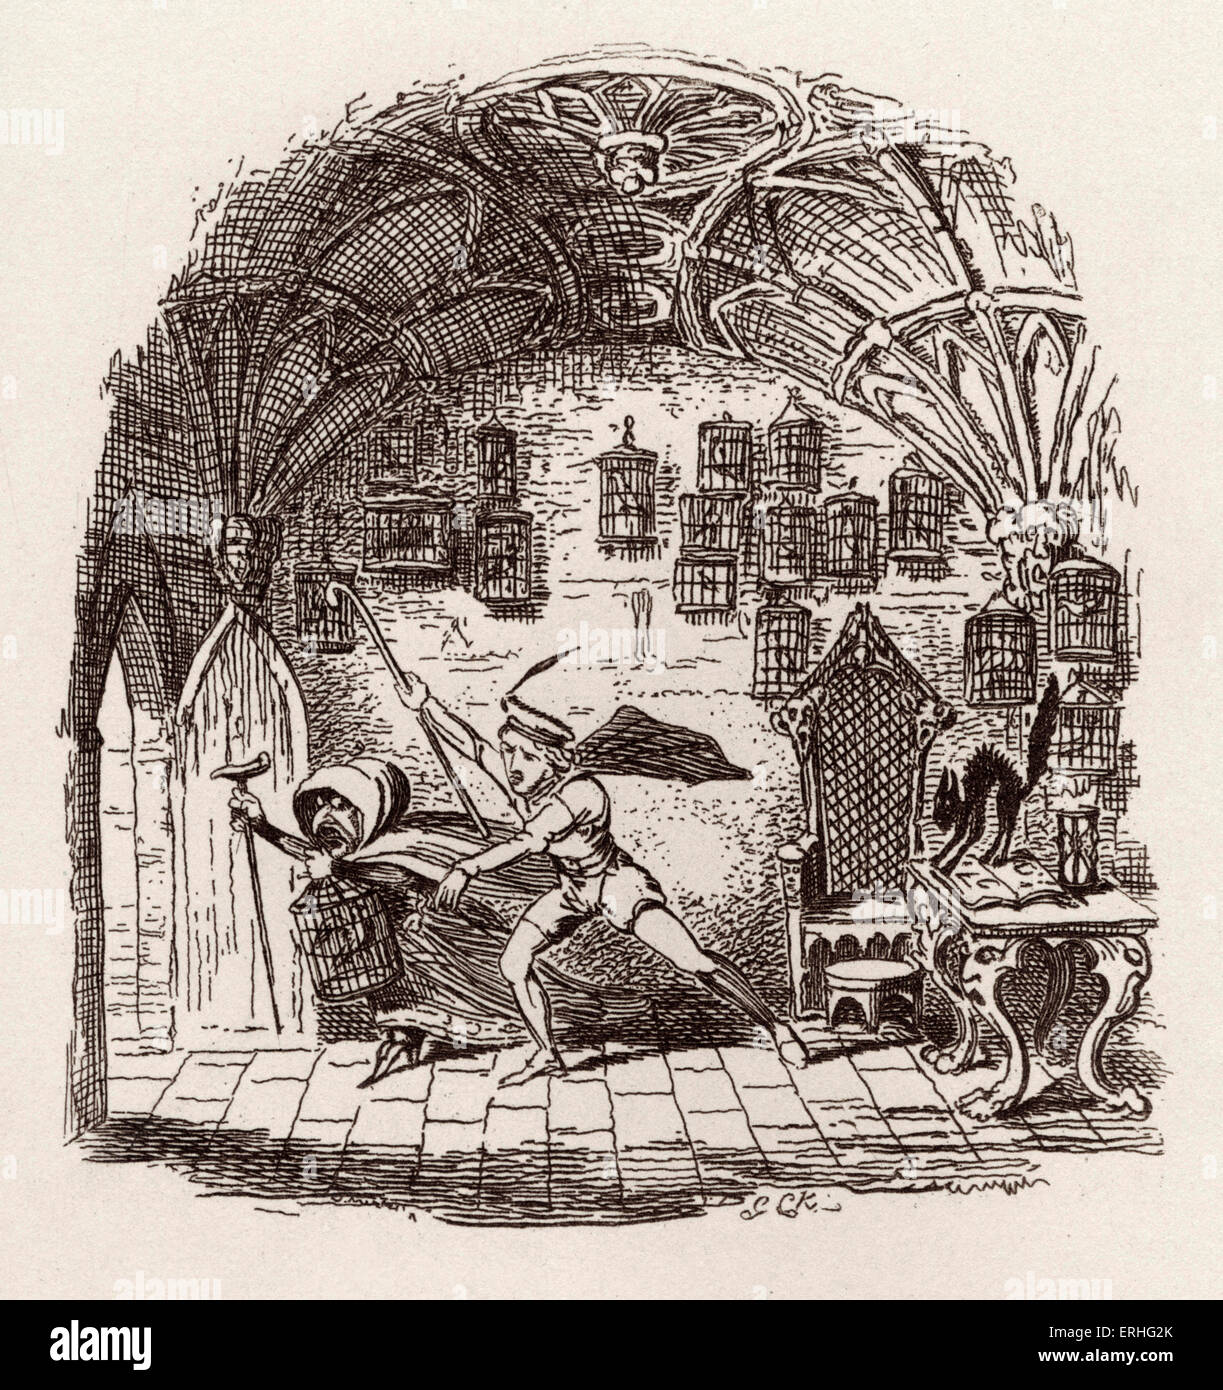 Brothers Grimm Children's and Household Tales - published in 1812-15. Later known as Grimm's fairy tales. - Stock Image